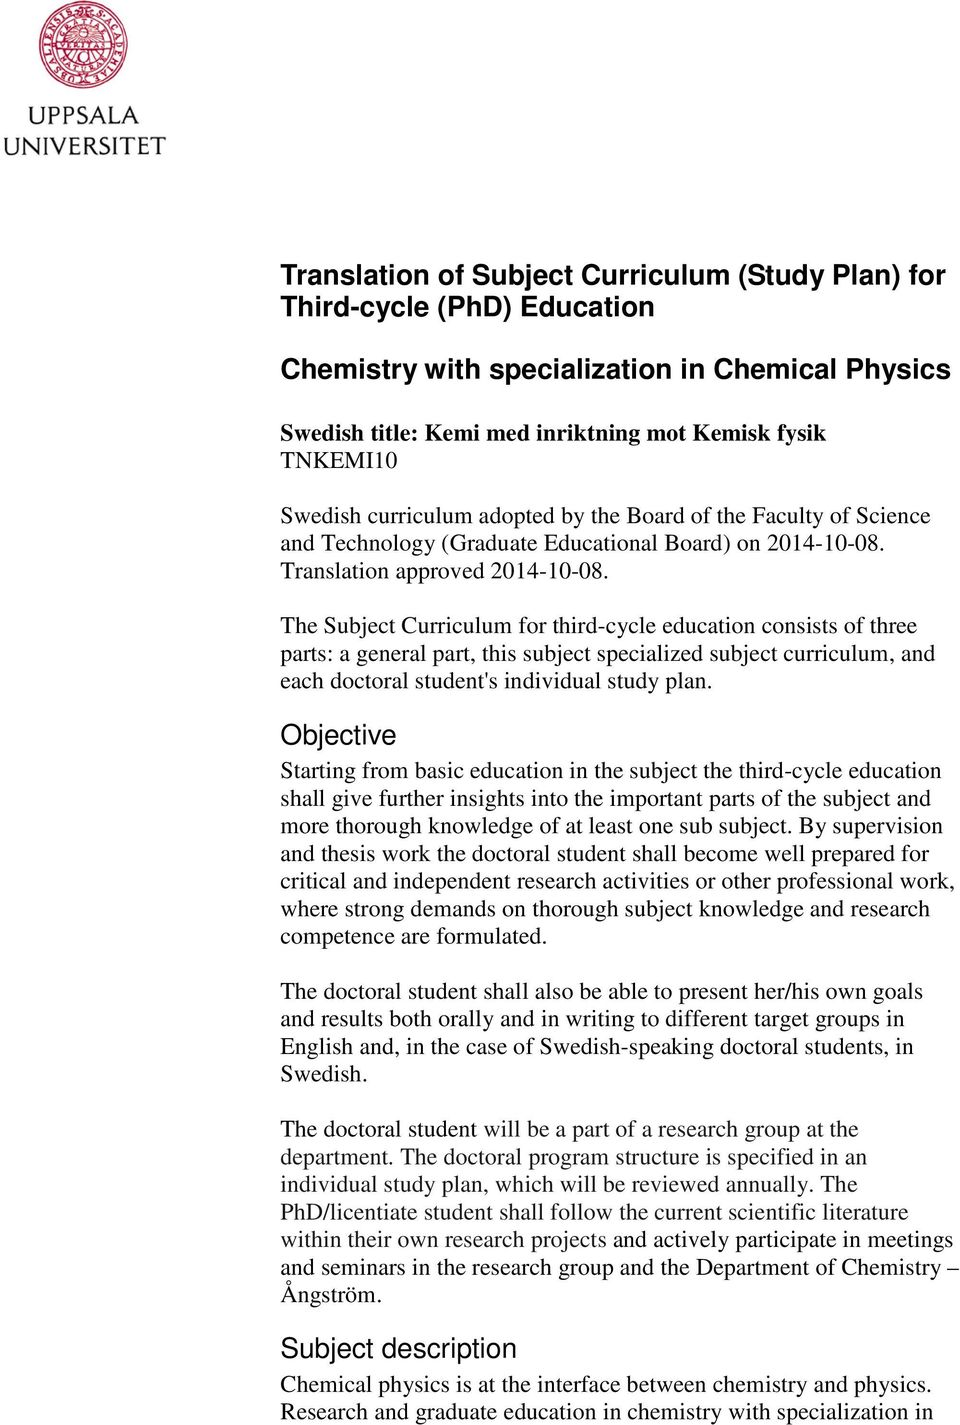 The Subject Curriculum for third-cycle education consists of three parts: a general part, this subject specialized subject curriculum, and each doctoral student's individual study plan.